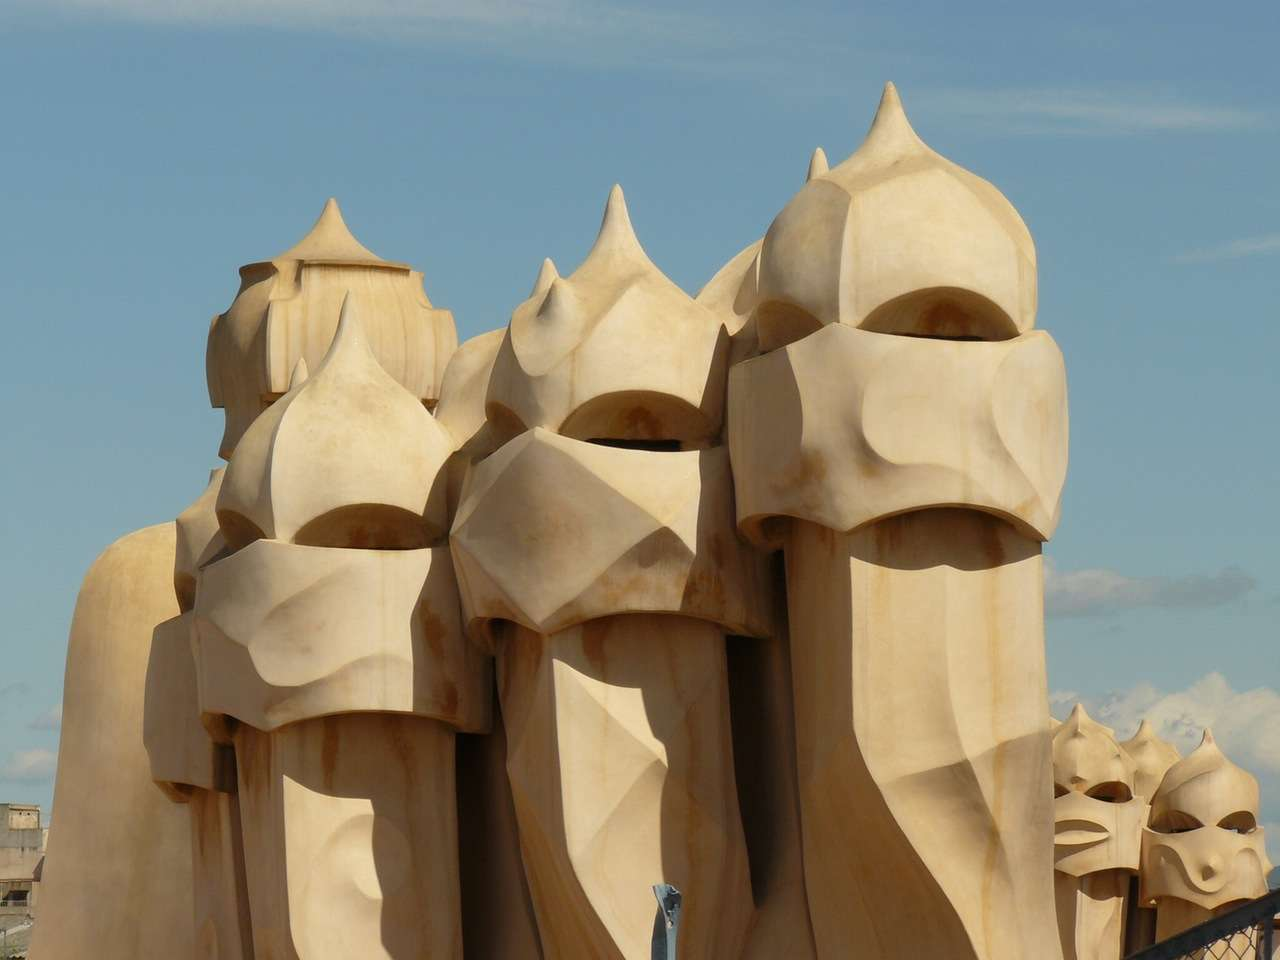 Casa MilàBarcelona - The 5 Most Romantic Cities in Europe